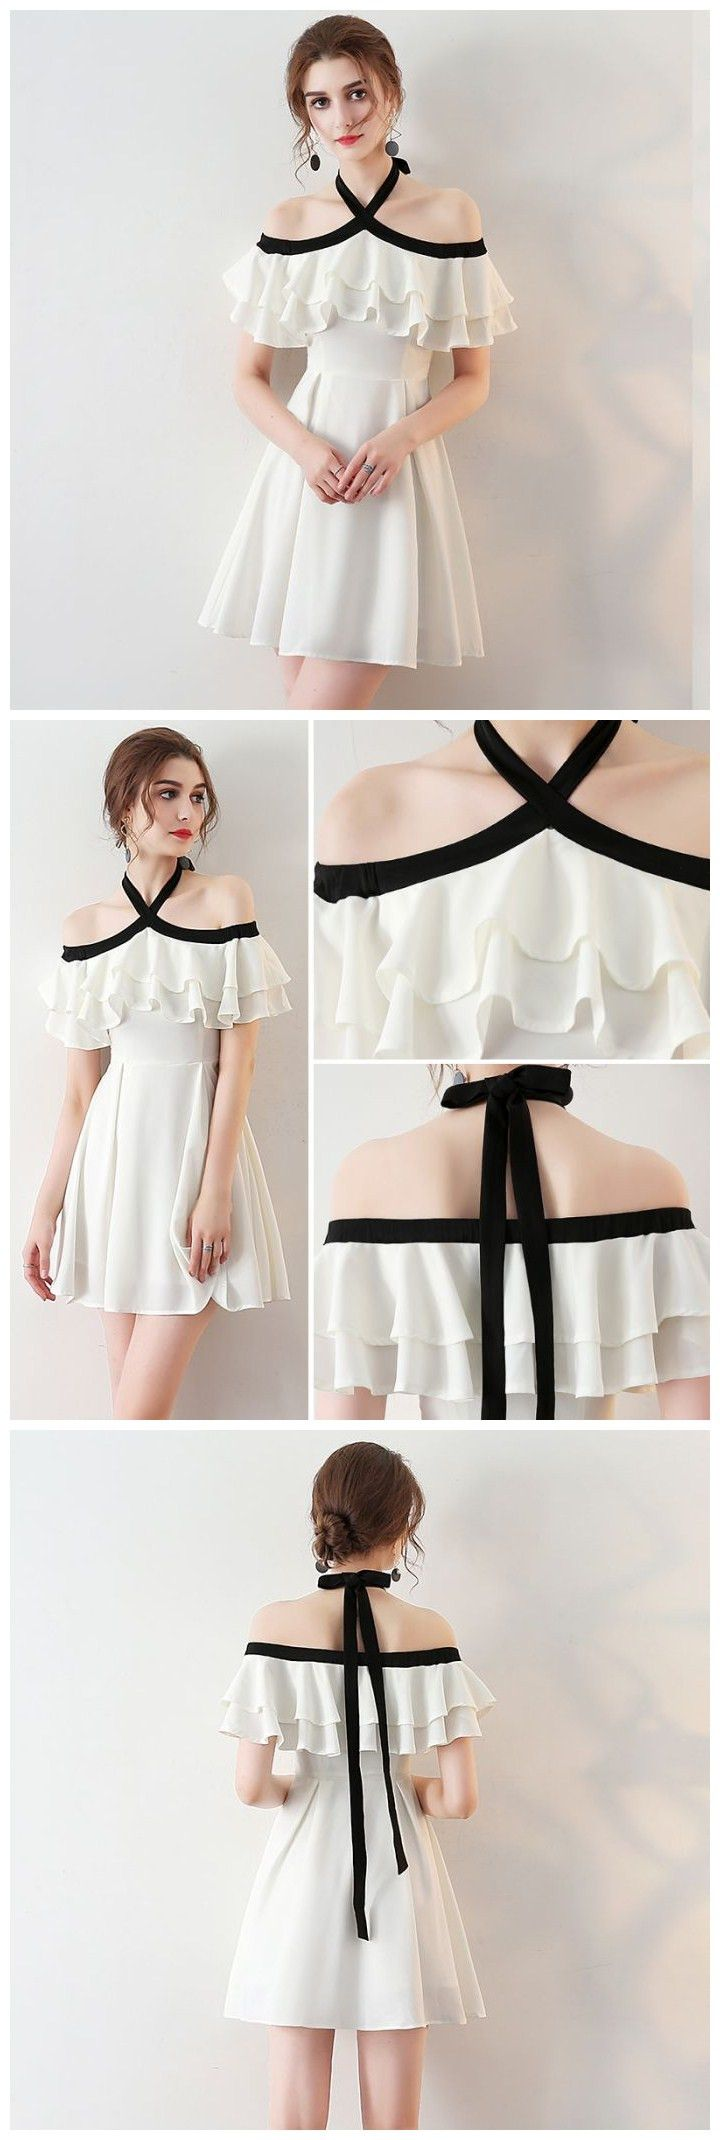 CHIC HALTER HOMECOMING DRESS SIMPLE WHITE CHEAP SHORT PROM DRESS AM060 #Shakiraesunacantantefamosaenelmundo.NacióysecrióenColombia.